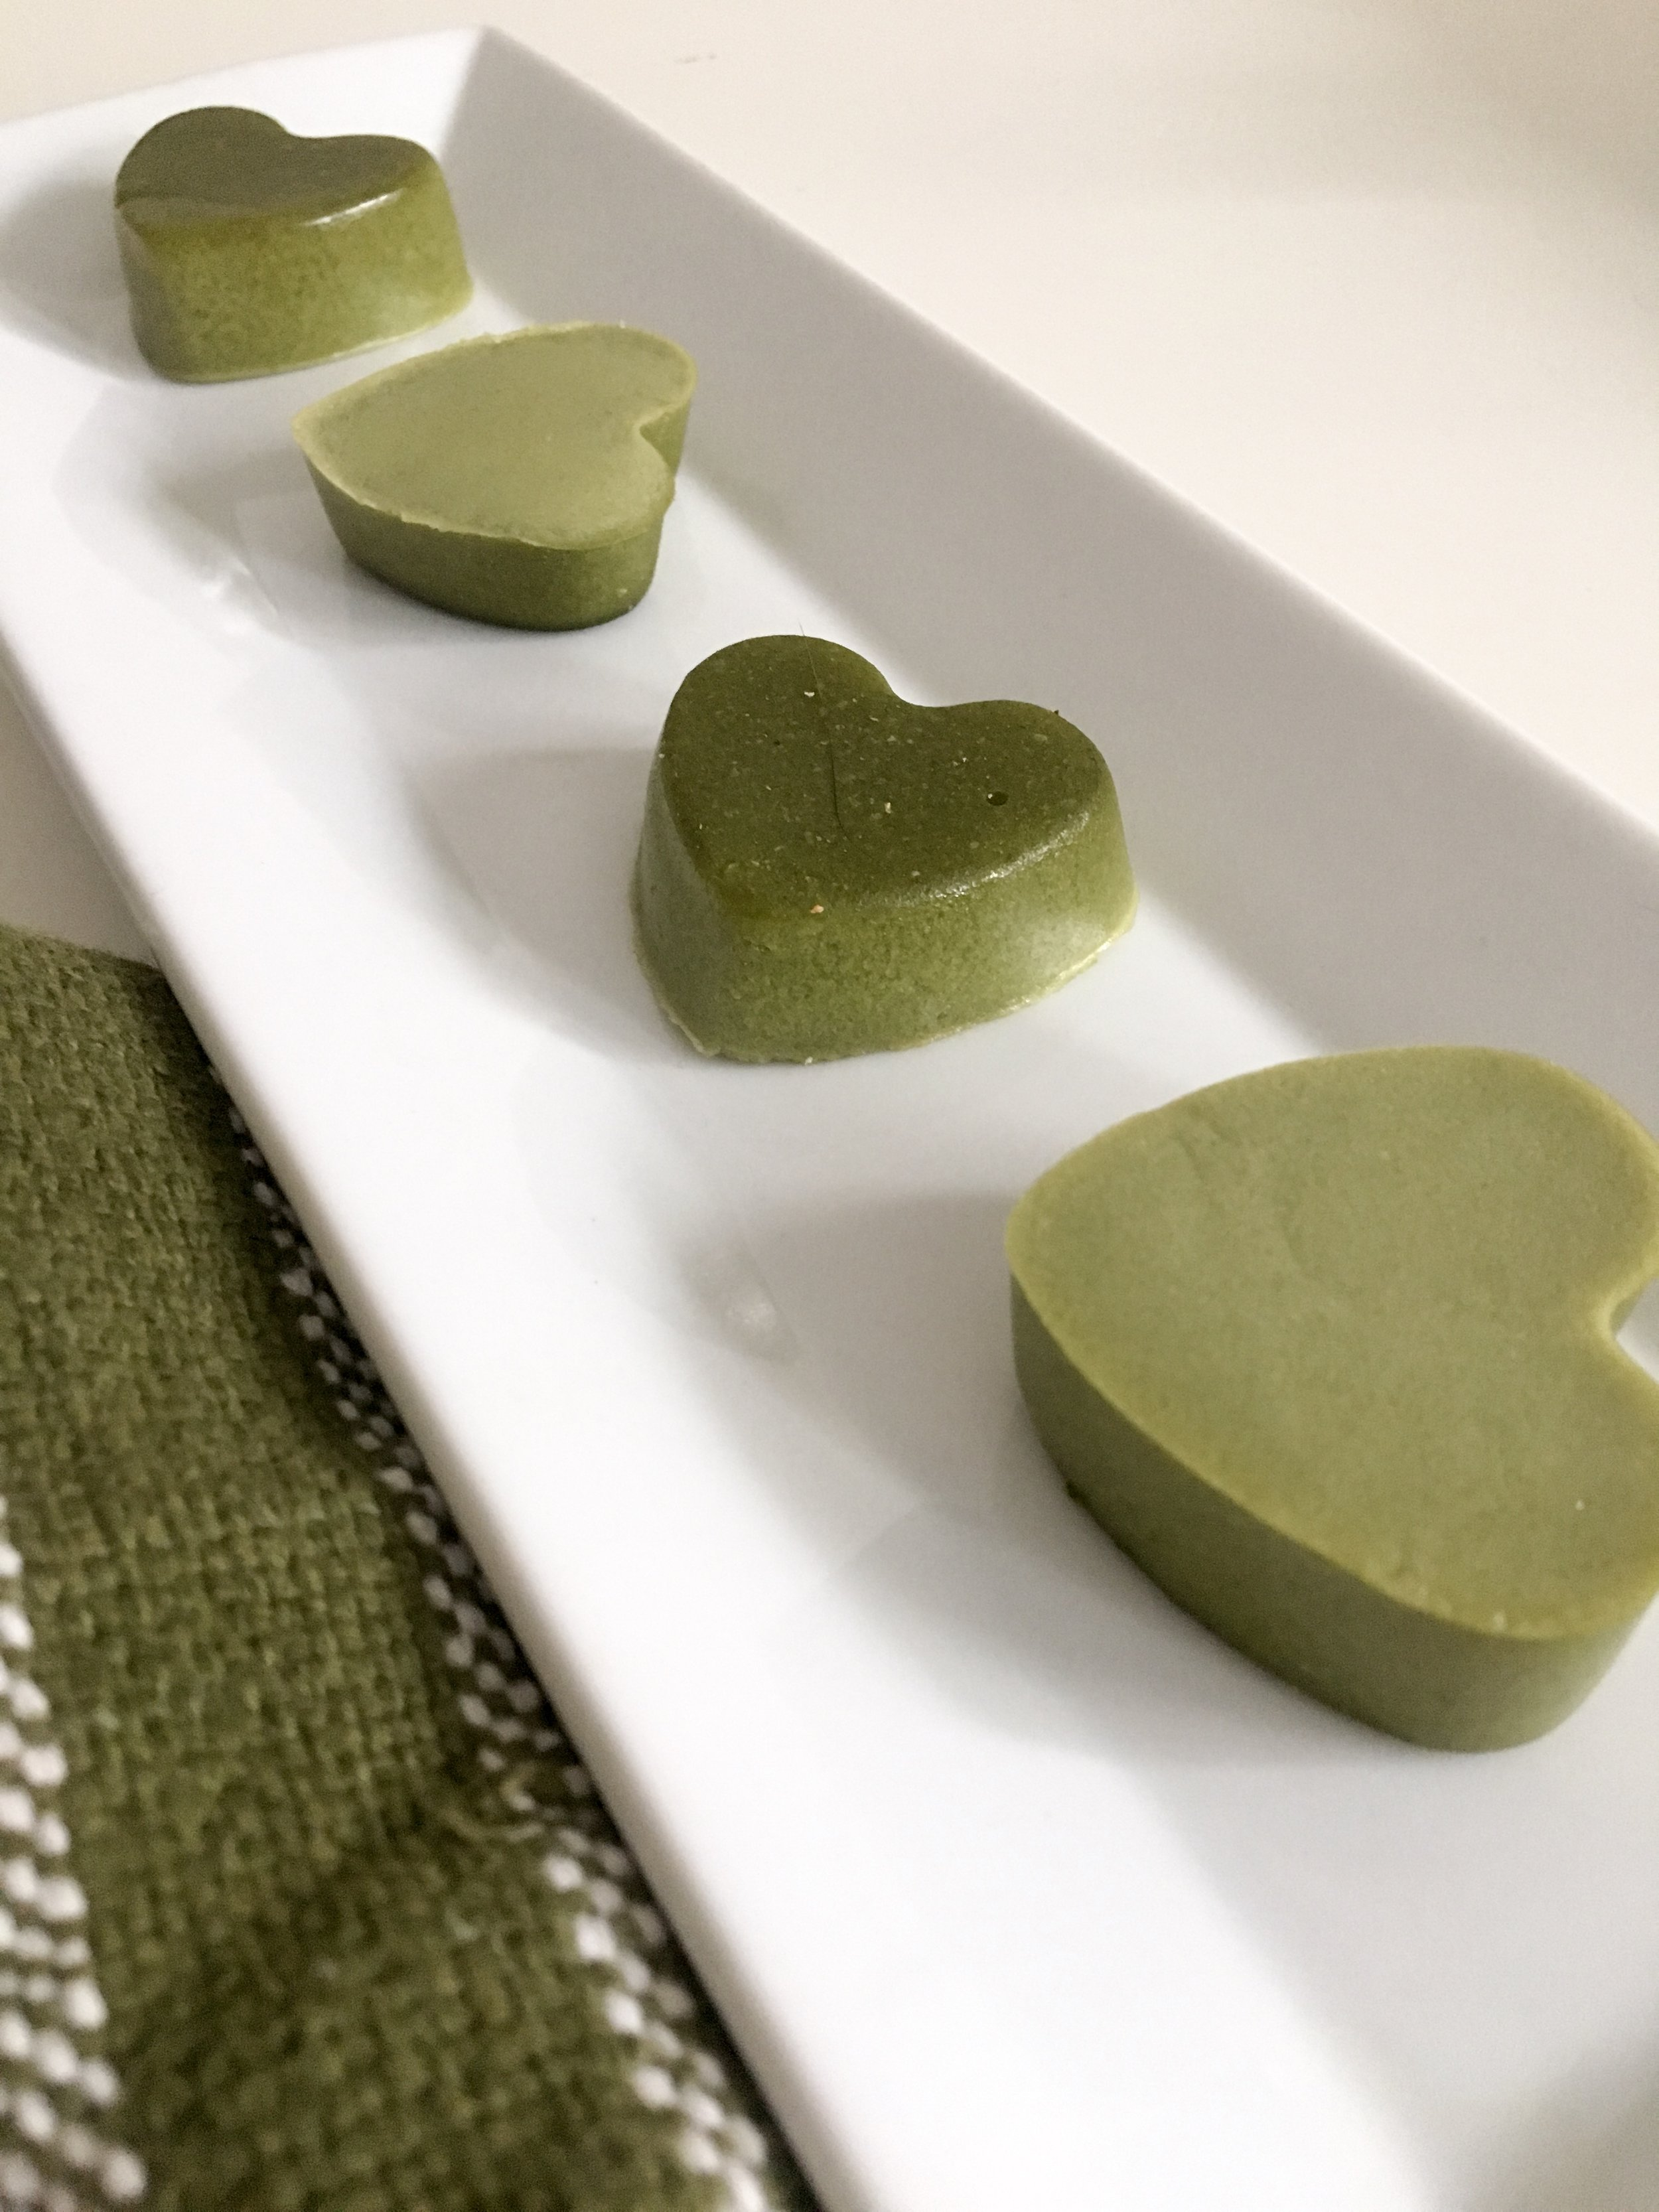 The matcha will settle slightly while the gummies set which give them a great ombré look.